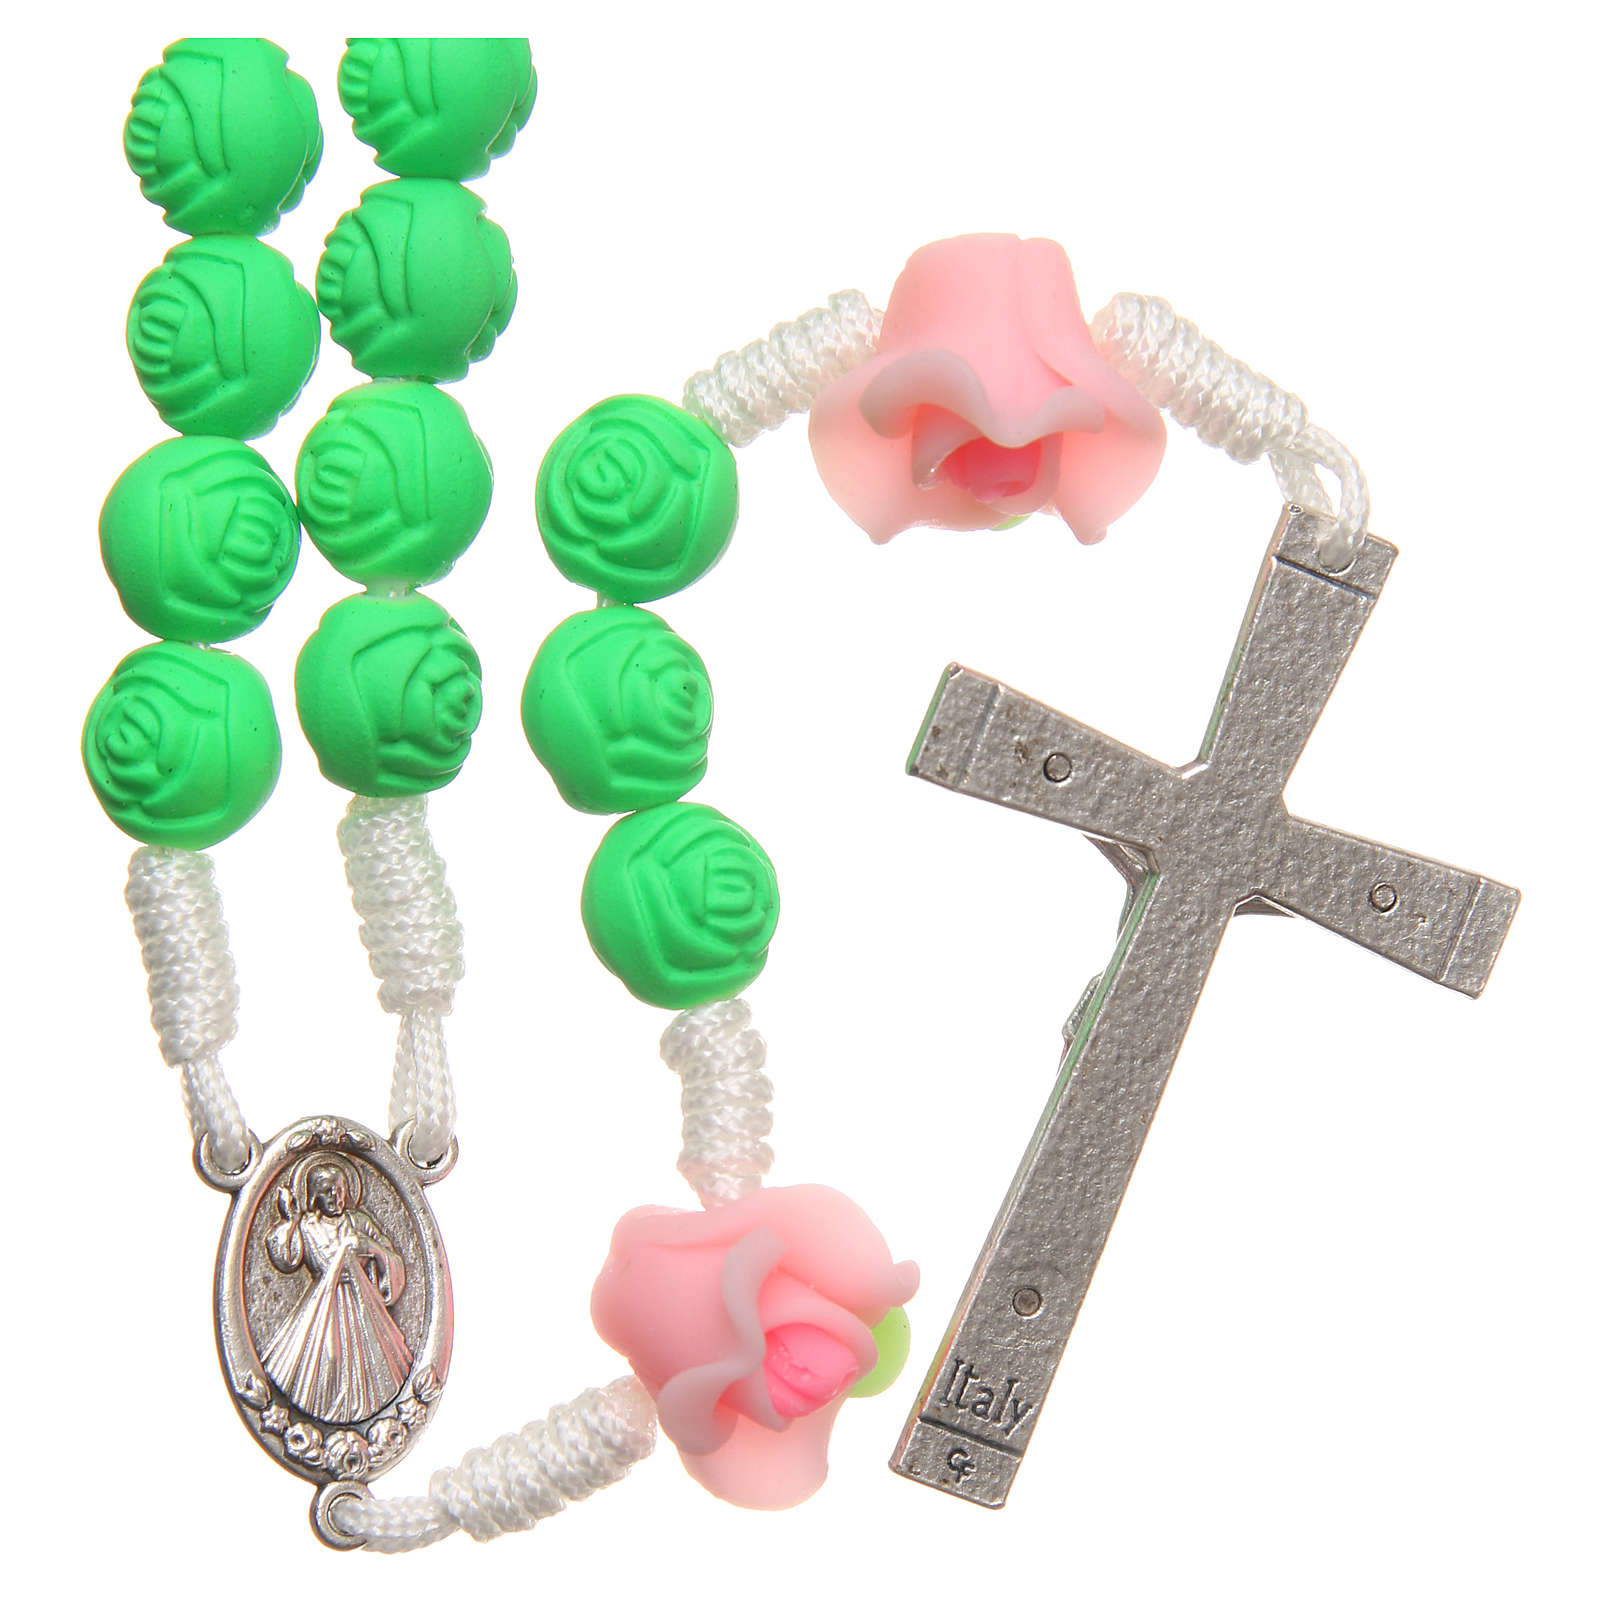 Medjugorje rosary beads with green roses 4